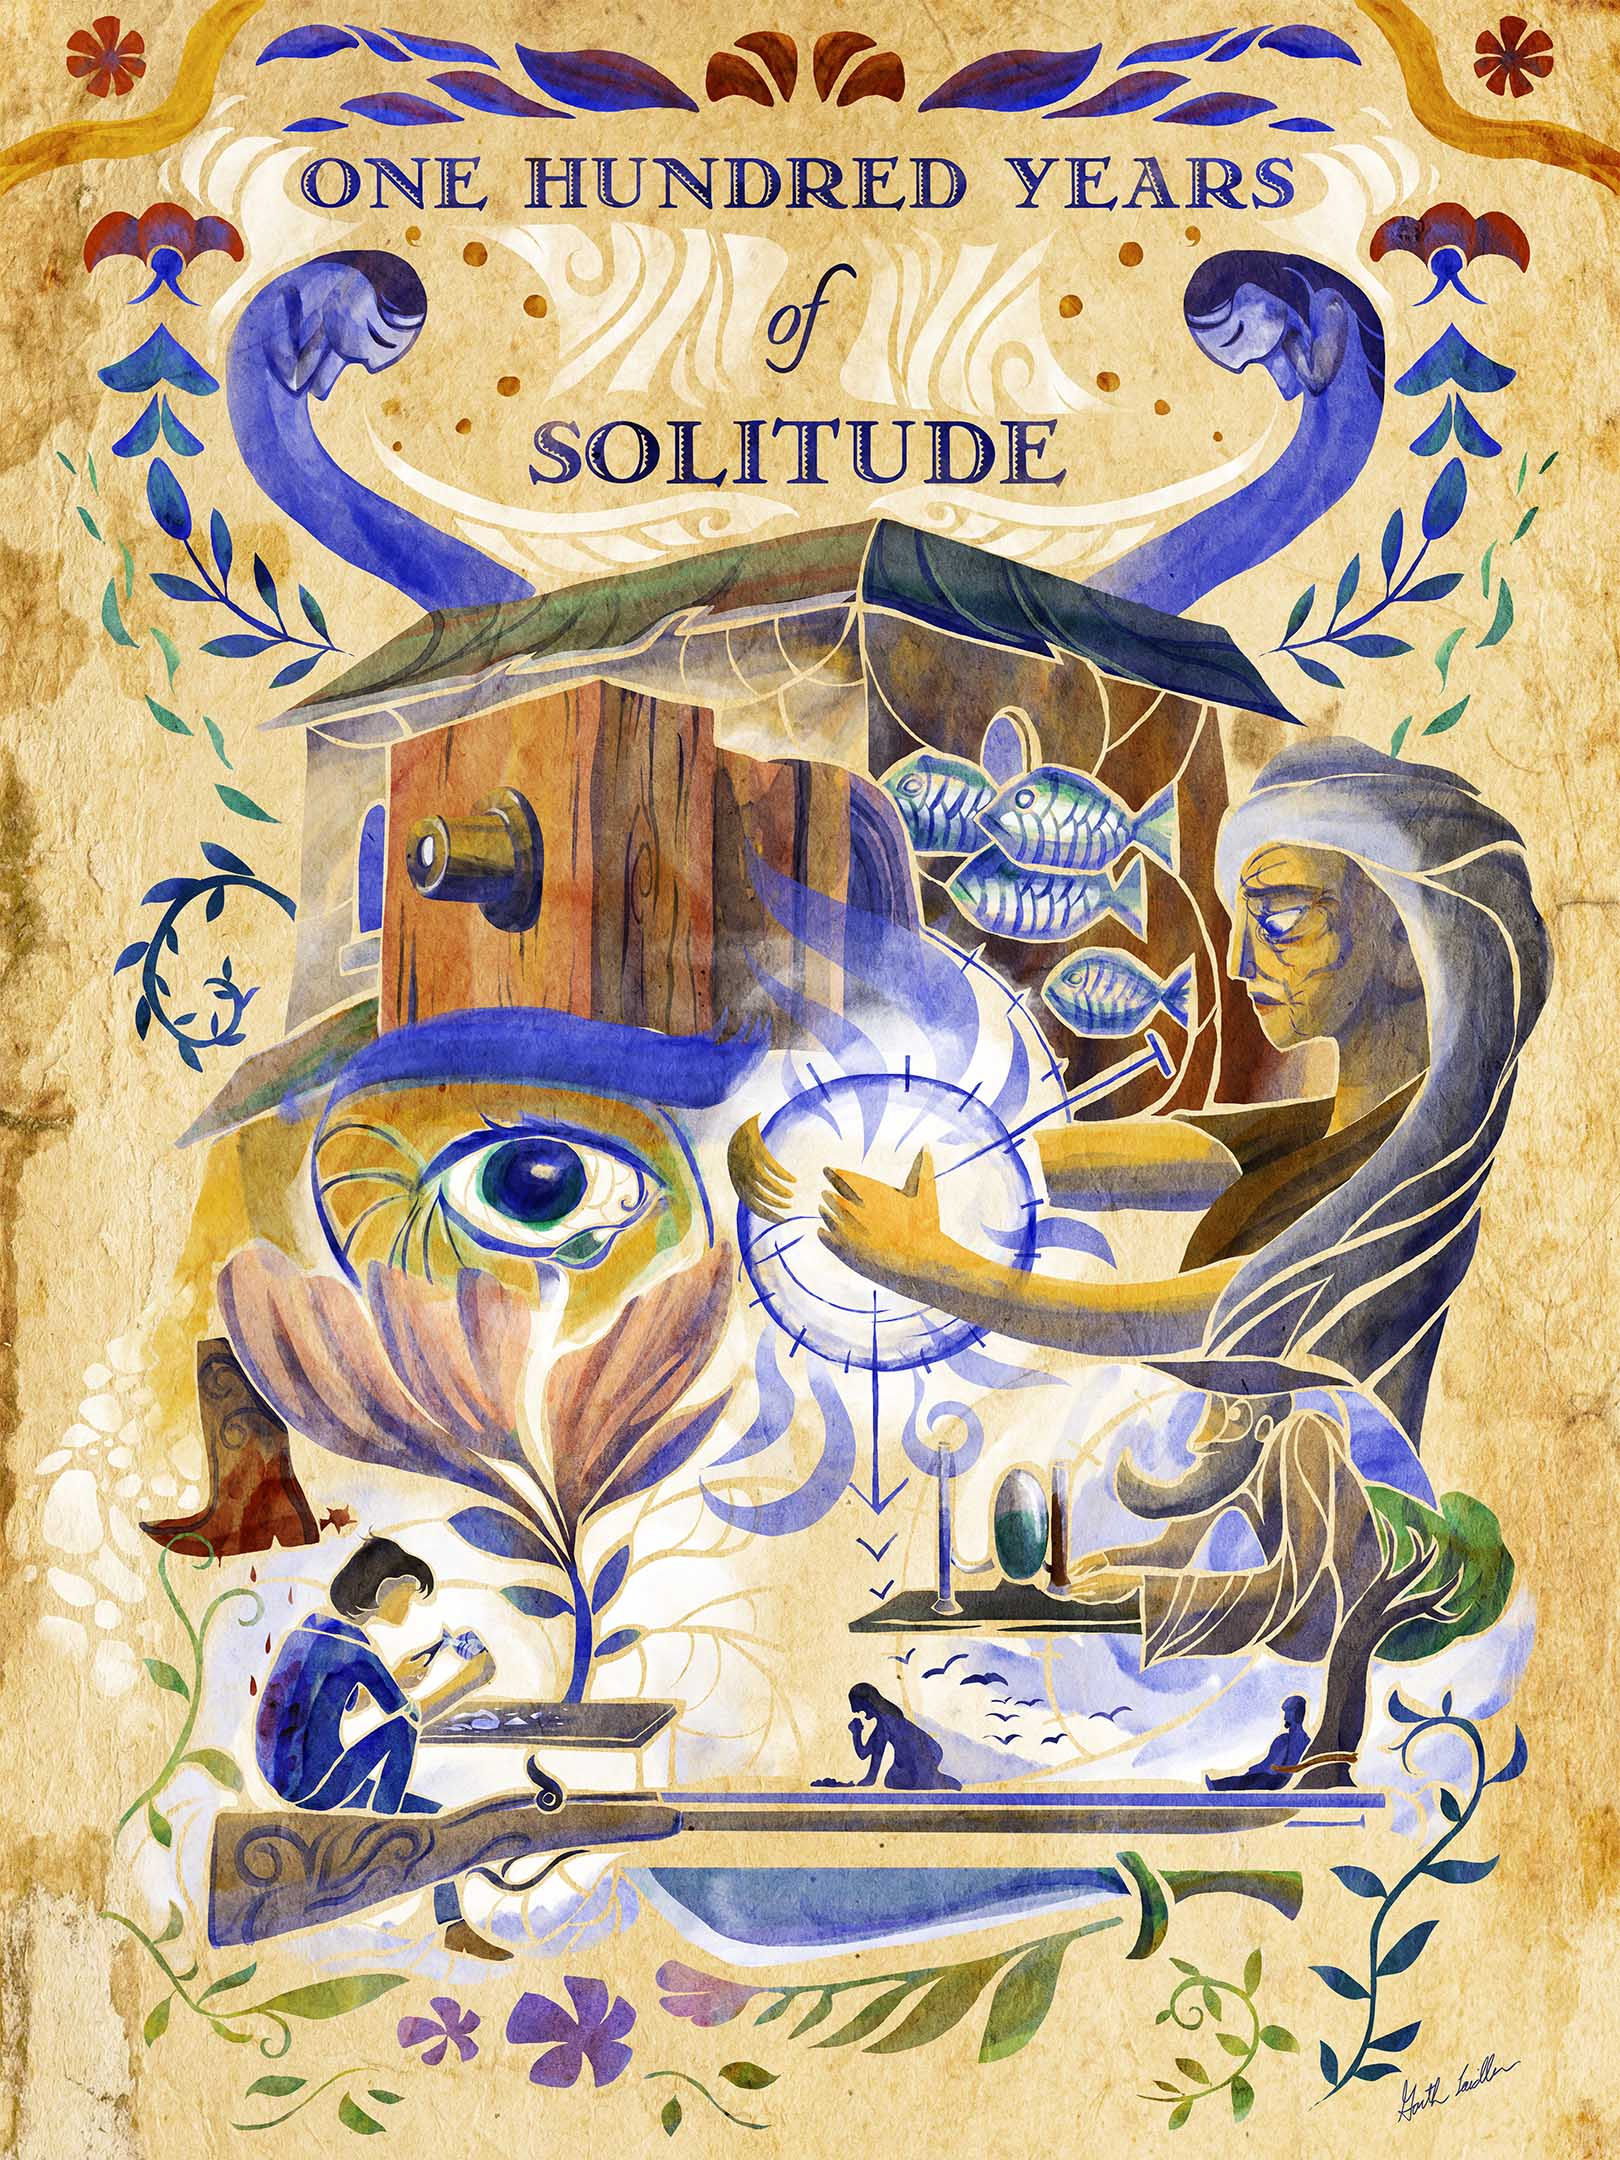 100 Years of Solitude Poster Art